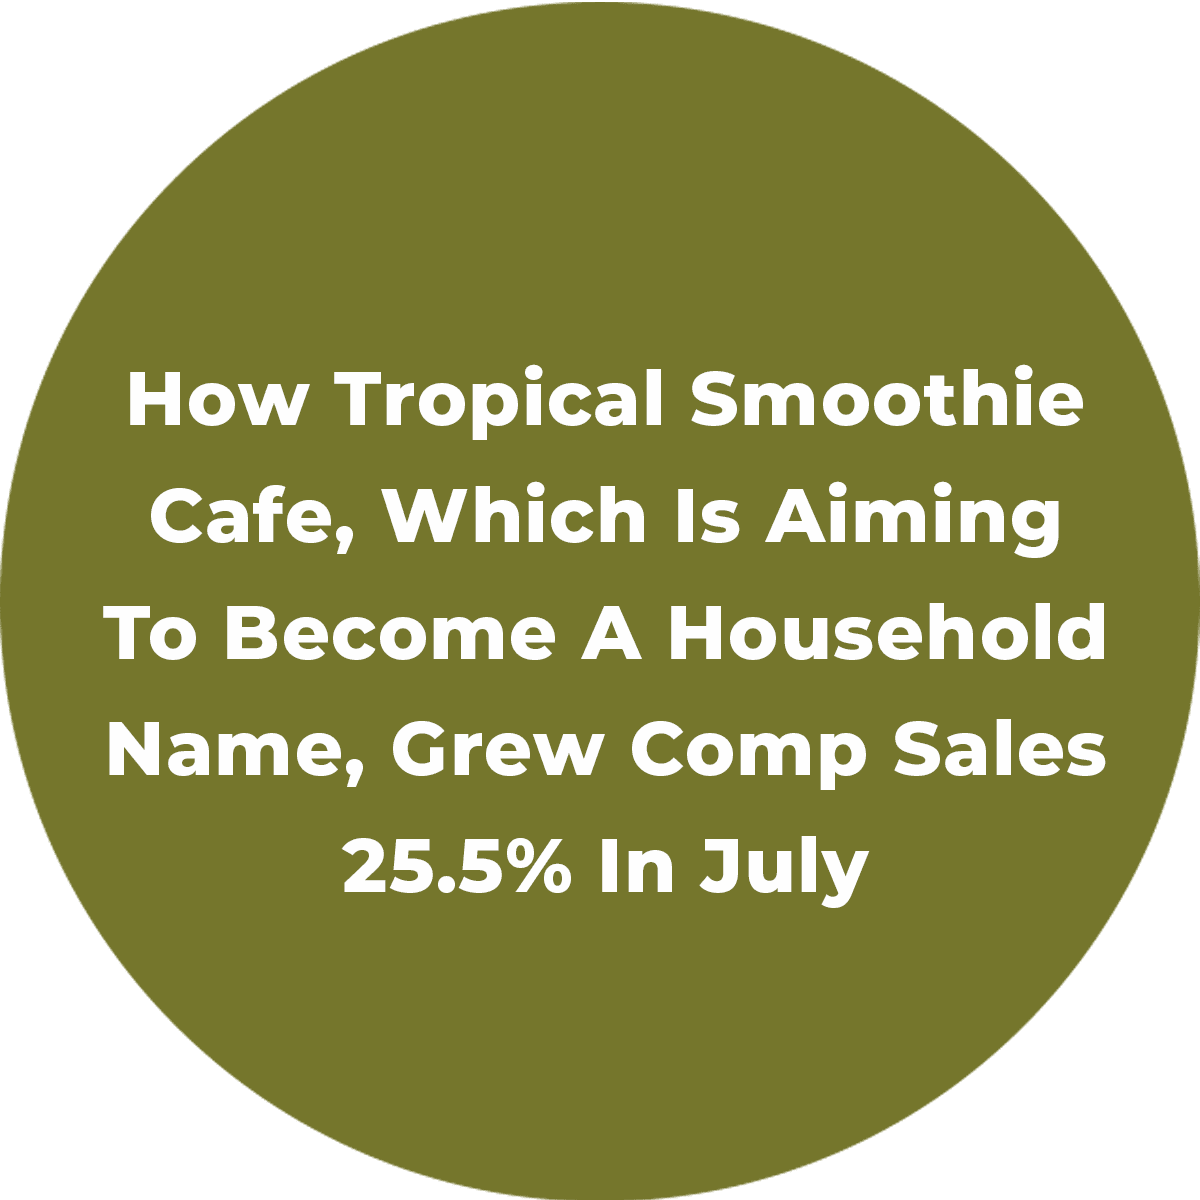 How Tropical Smoothie Cafe, Which Is Aiming To Become A Household Name, Grew Comp Sales 25.5% In July